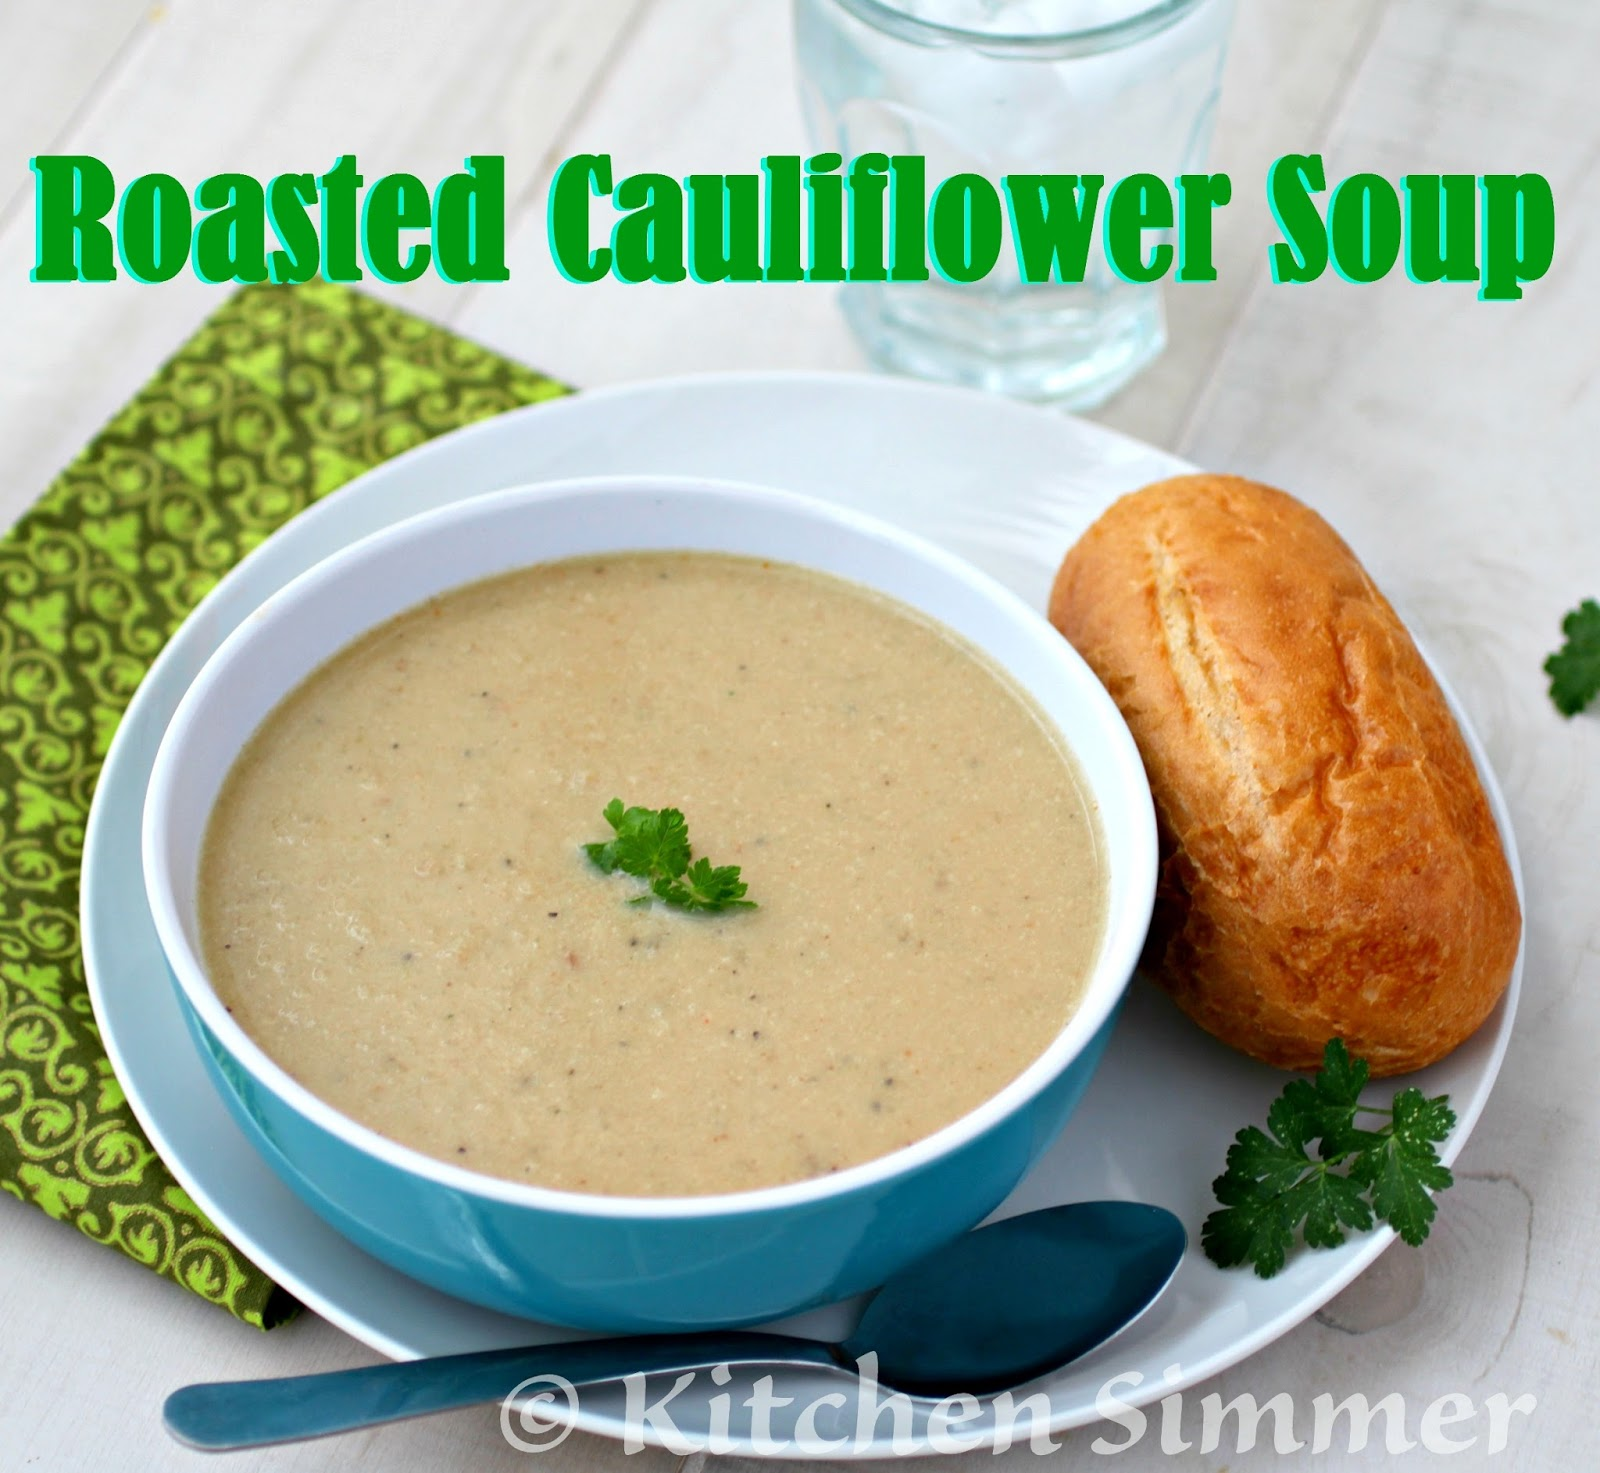 Kitchen Simmer: Roasted Cauliflower Soup - Meatless Monday